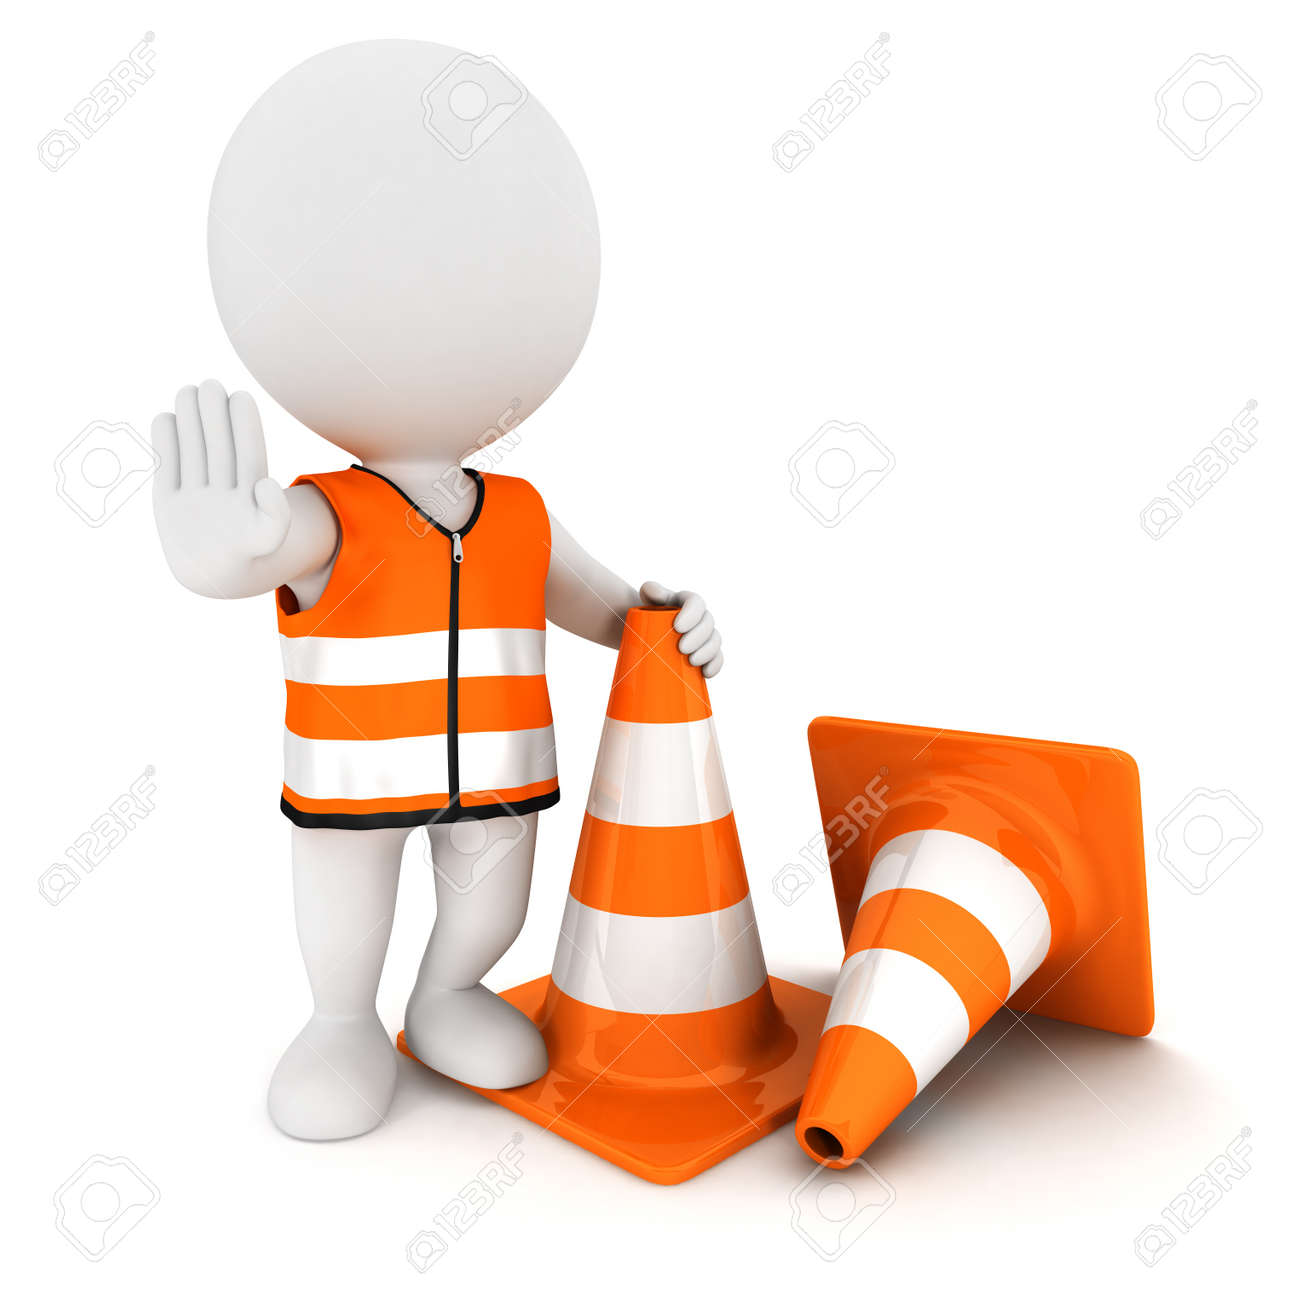 3d white people stop sign with traffic cones and wearing a safety vest, isolated white background, 3d image Stock Photo - 13678377